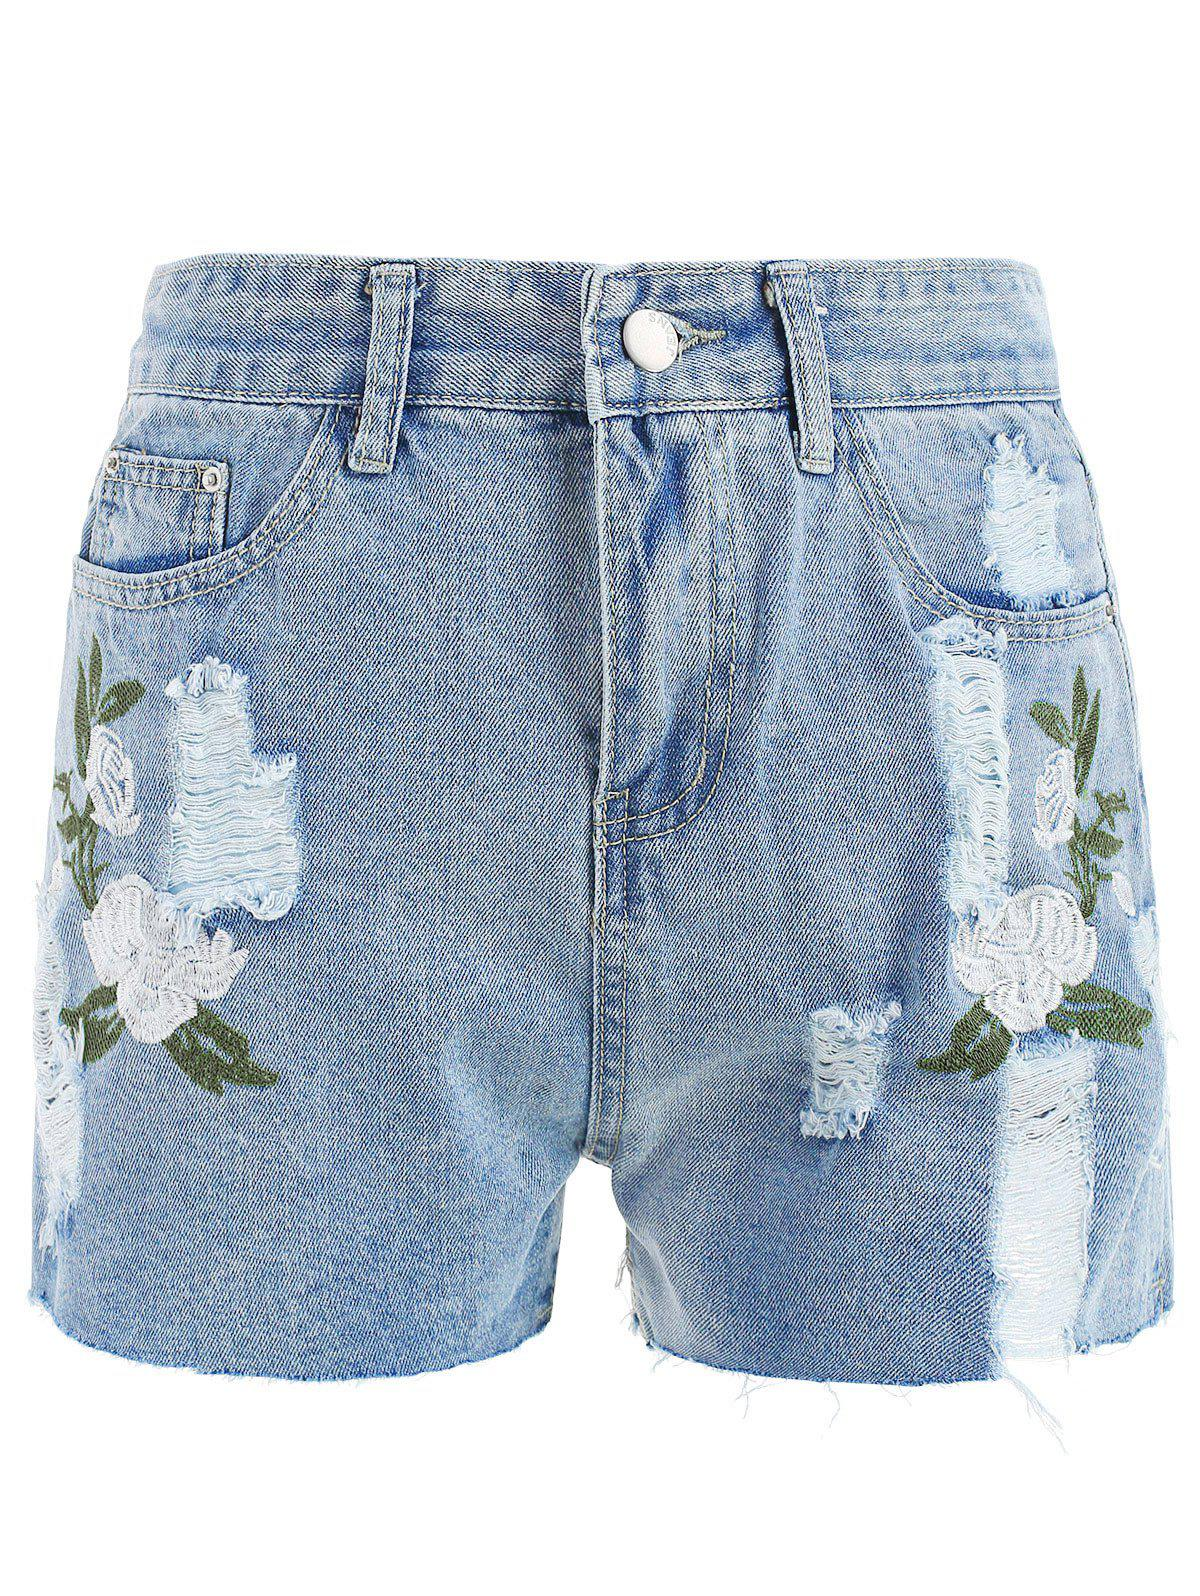 New Floral Embroidery Mini Denim shorts